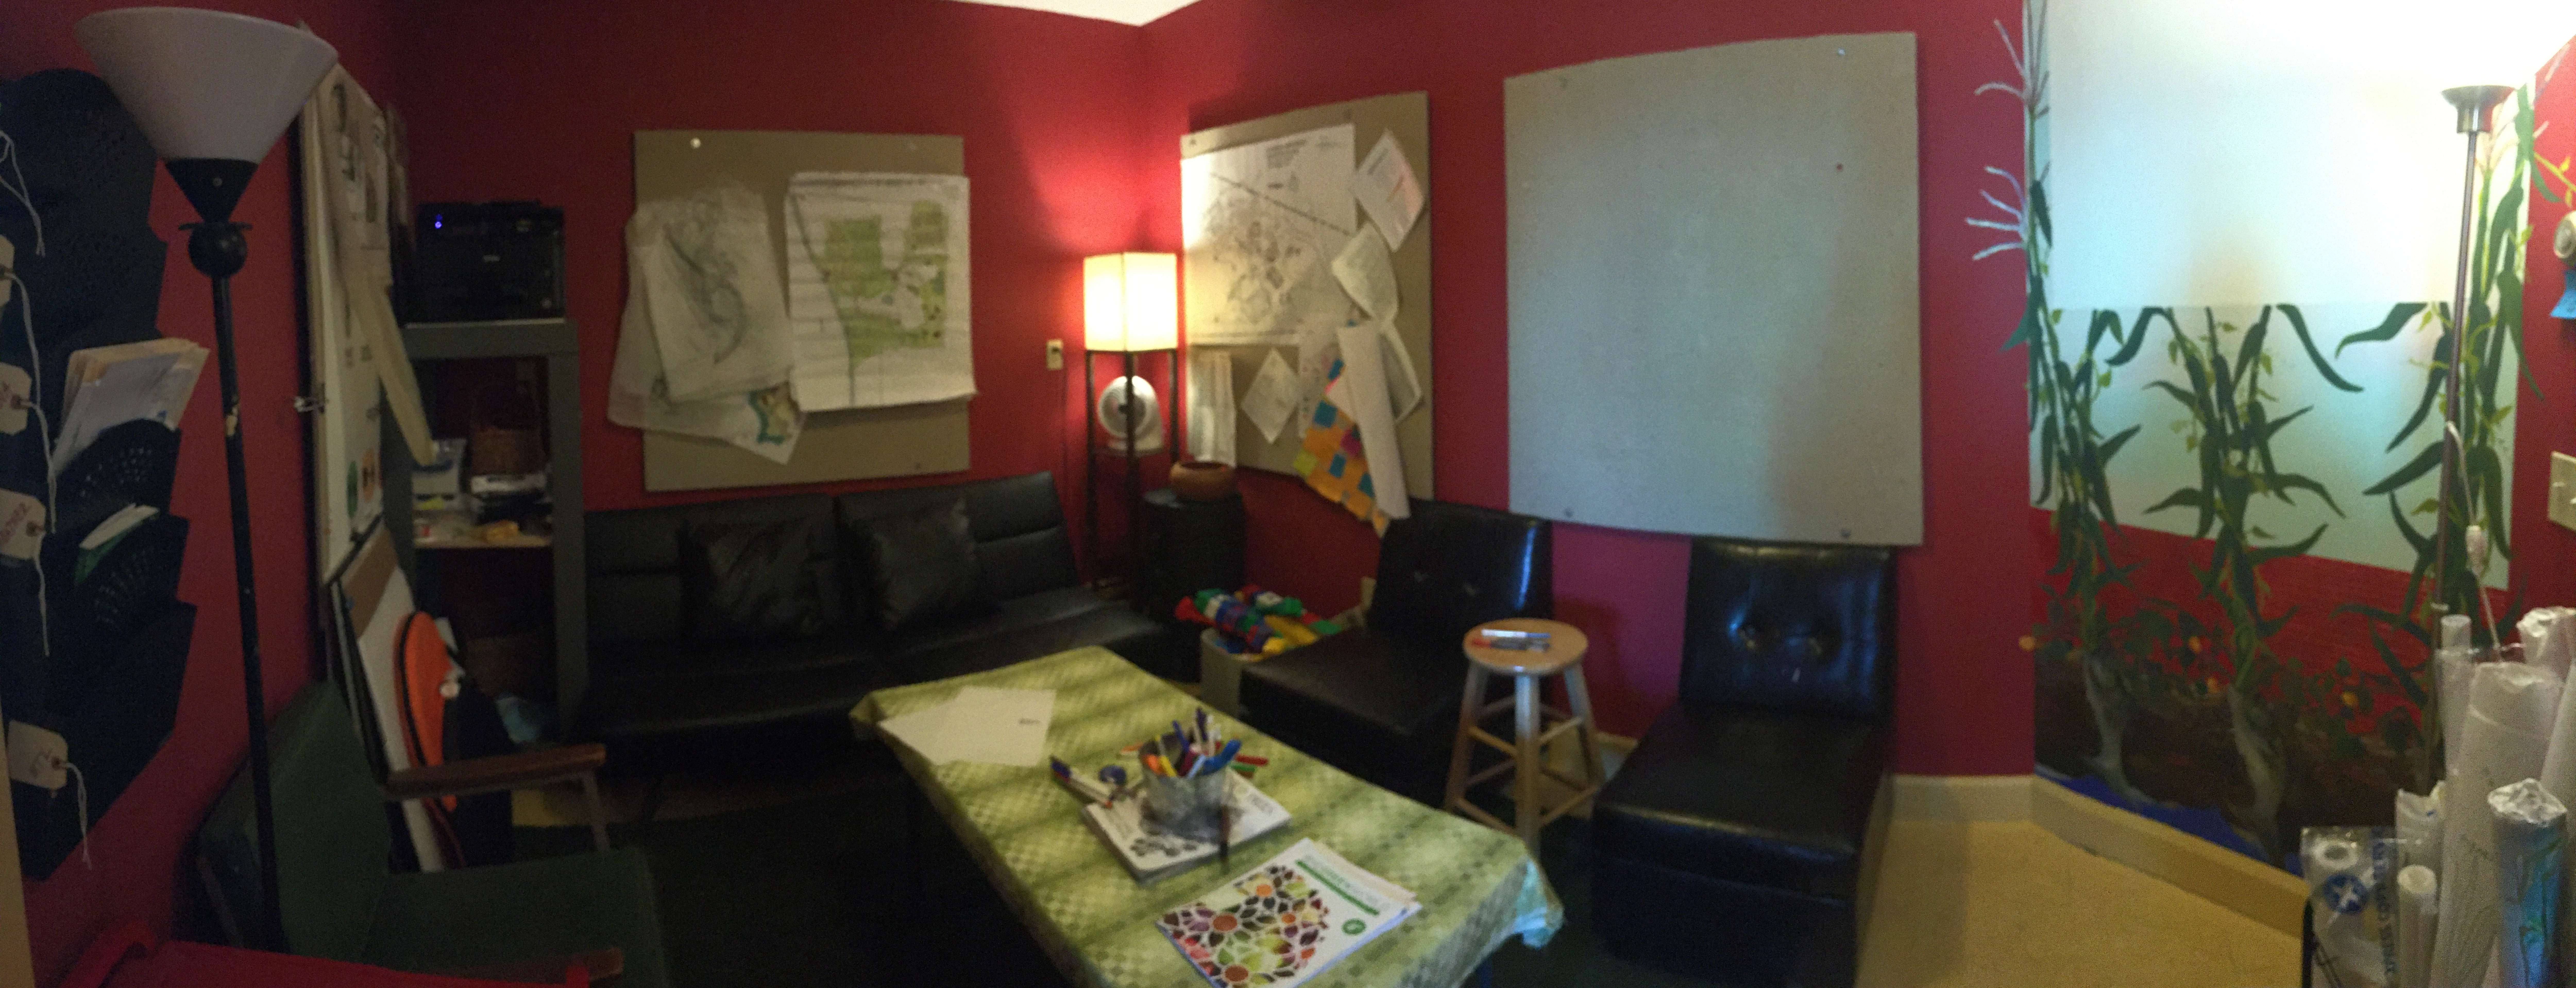 used office furniture portland maine. *Meeting Space Is Directly Attached And Open To The Workstation Desk Area. Suitable For Client Meetings Or Groups Of Up 5-6 People. Used Office Furniture Portland Maine